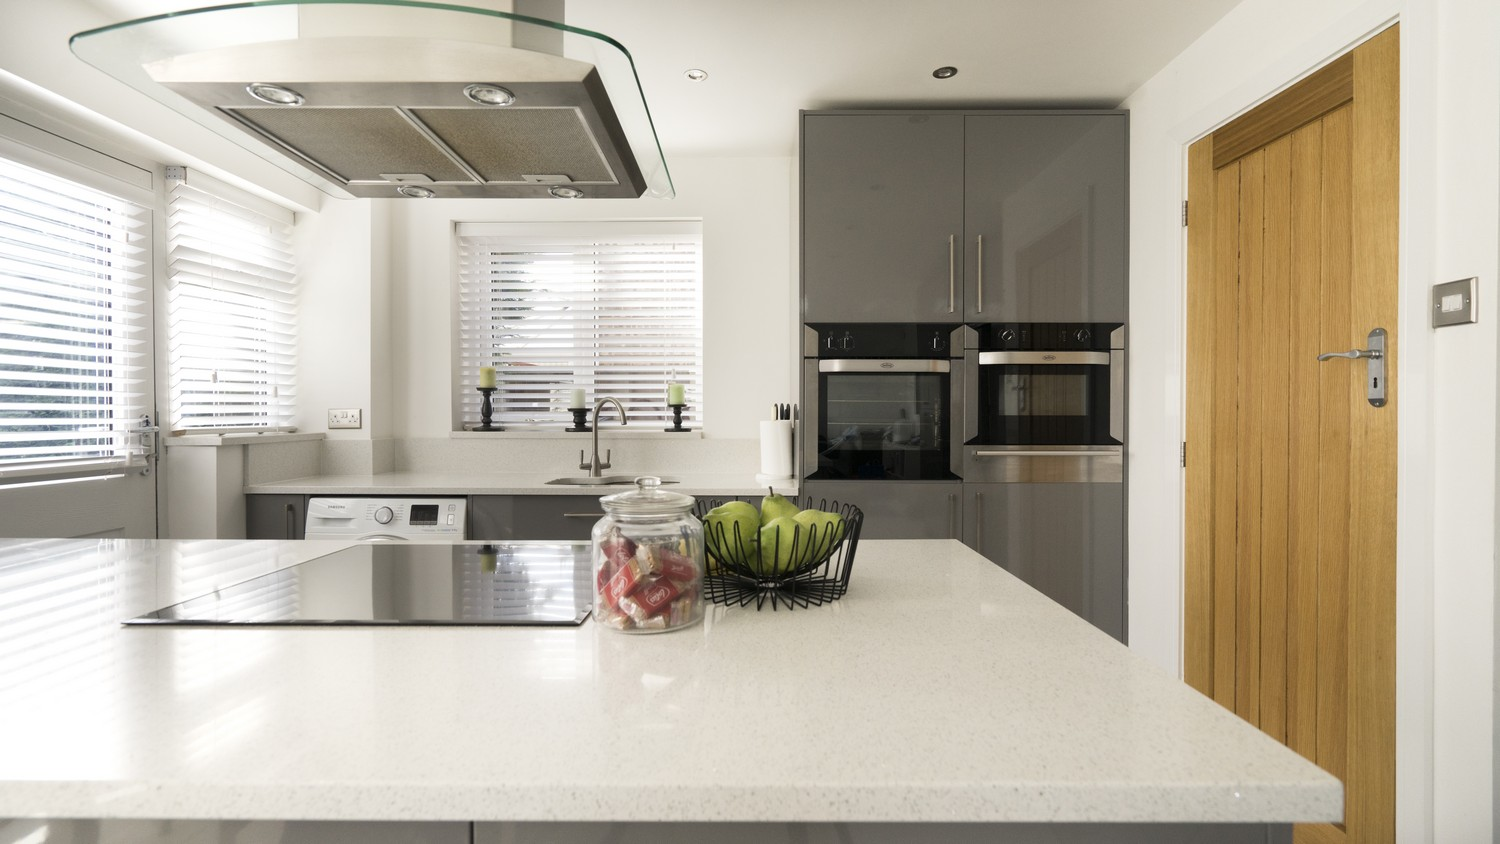 Straight on view of the grey gloss kitchen in Kirkby, Liverpool featuring white glitter Corian worktops, integrated appliances and integrated cooking hob.